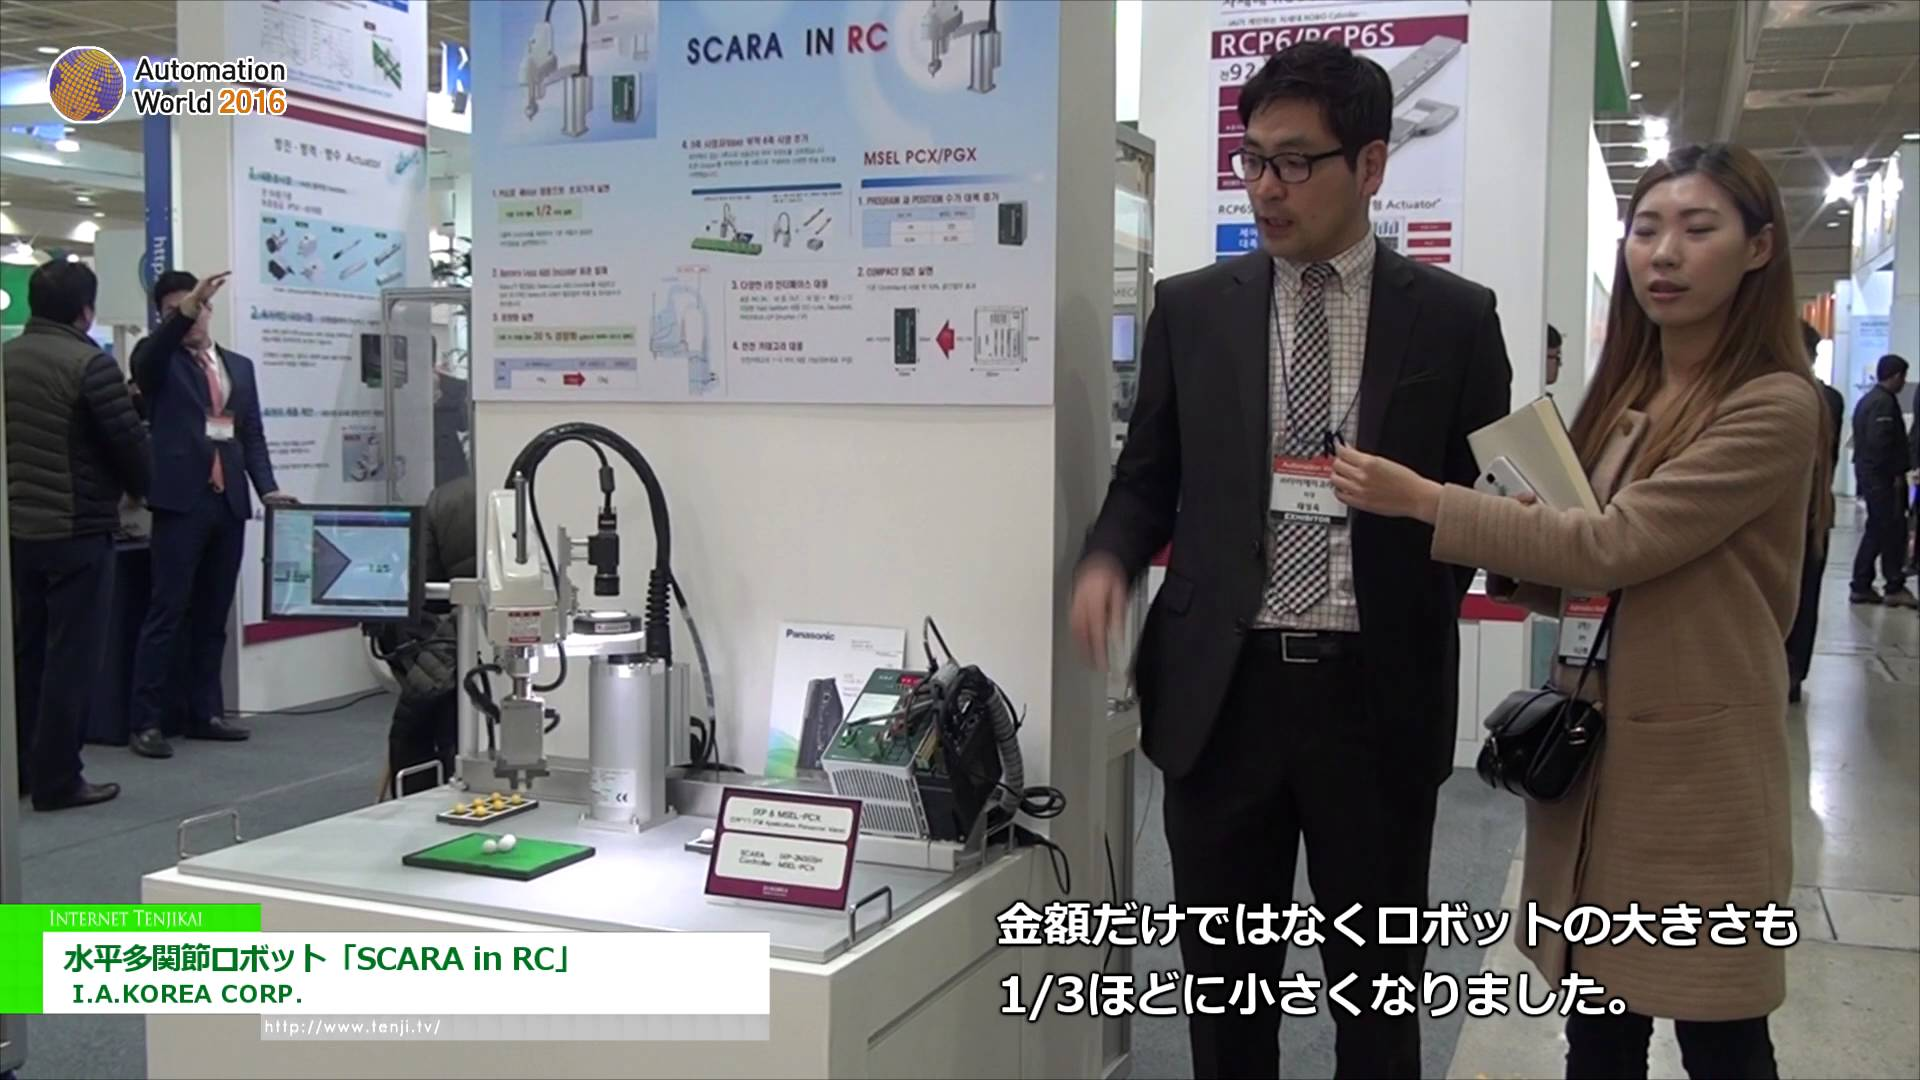 [Automation World 2016] 水平多関節ロボット「SCARA in RC」 – I.A.KOREA CORP.